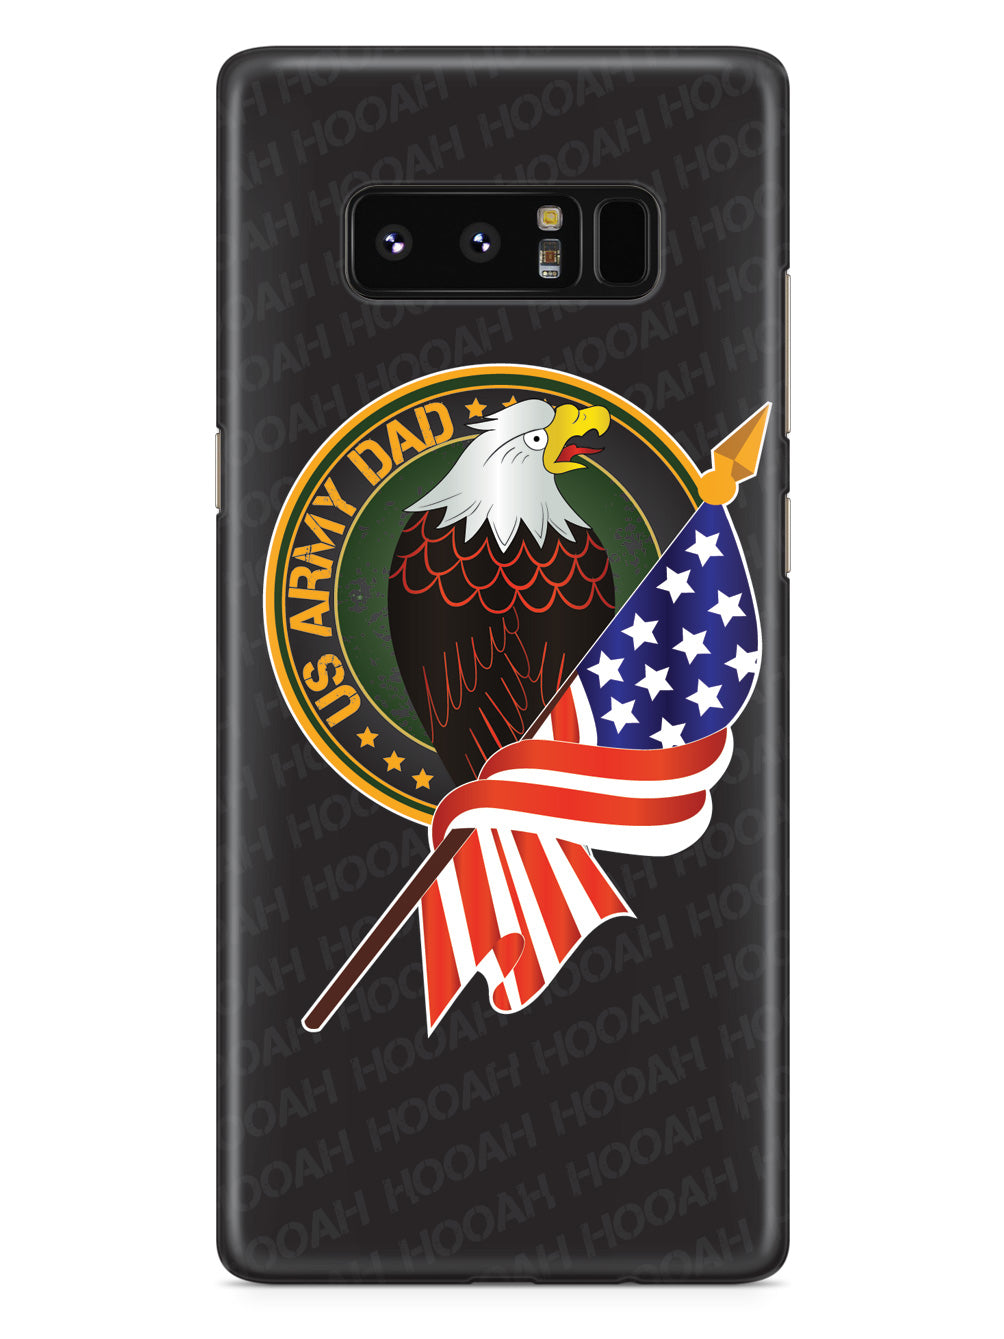 U.S. Army Dad Case